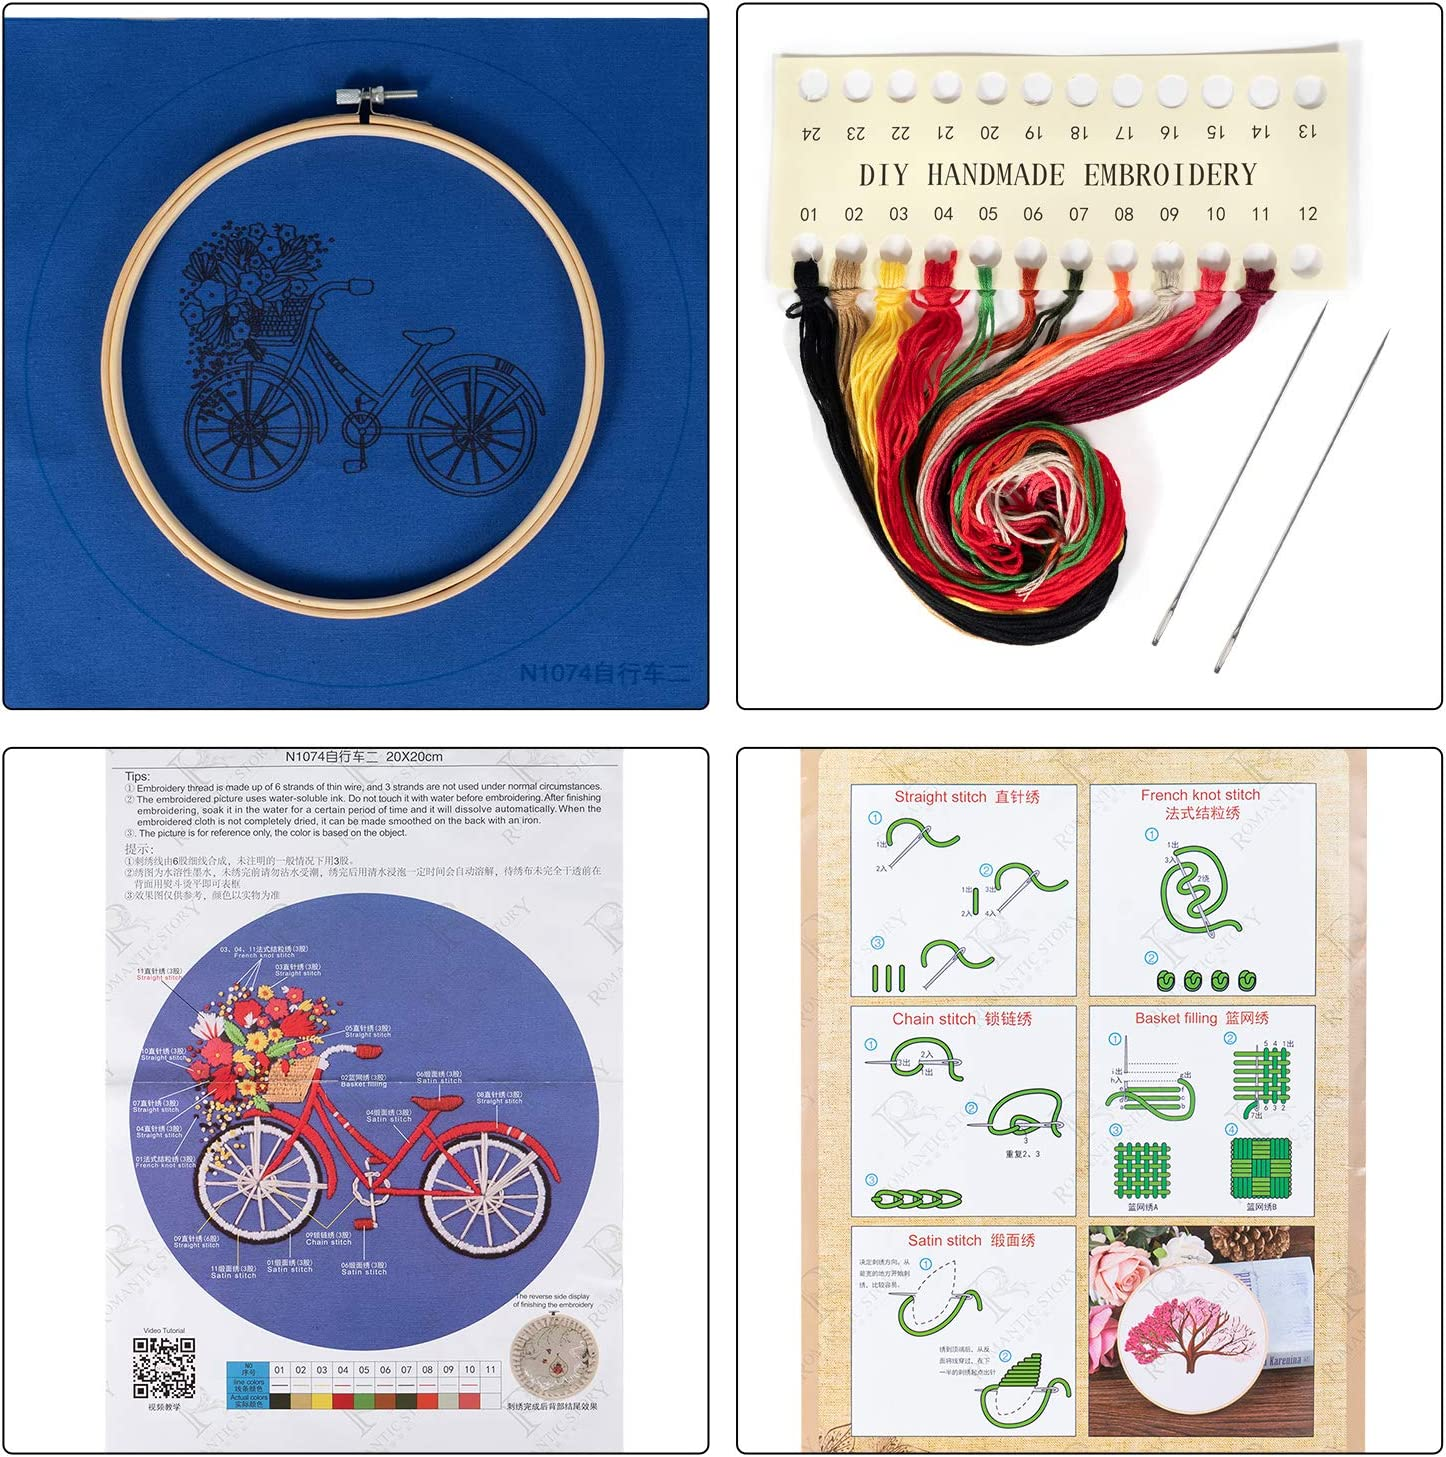 Color Threads and Tools Kit Bamboo Embroidery Hoop Embroidery Starter Kit with Pattern YINASI Full Range of Stamped Embroidery Kit Including Embroidery Cloth with Bicycle Pattern